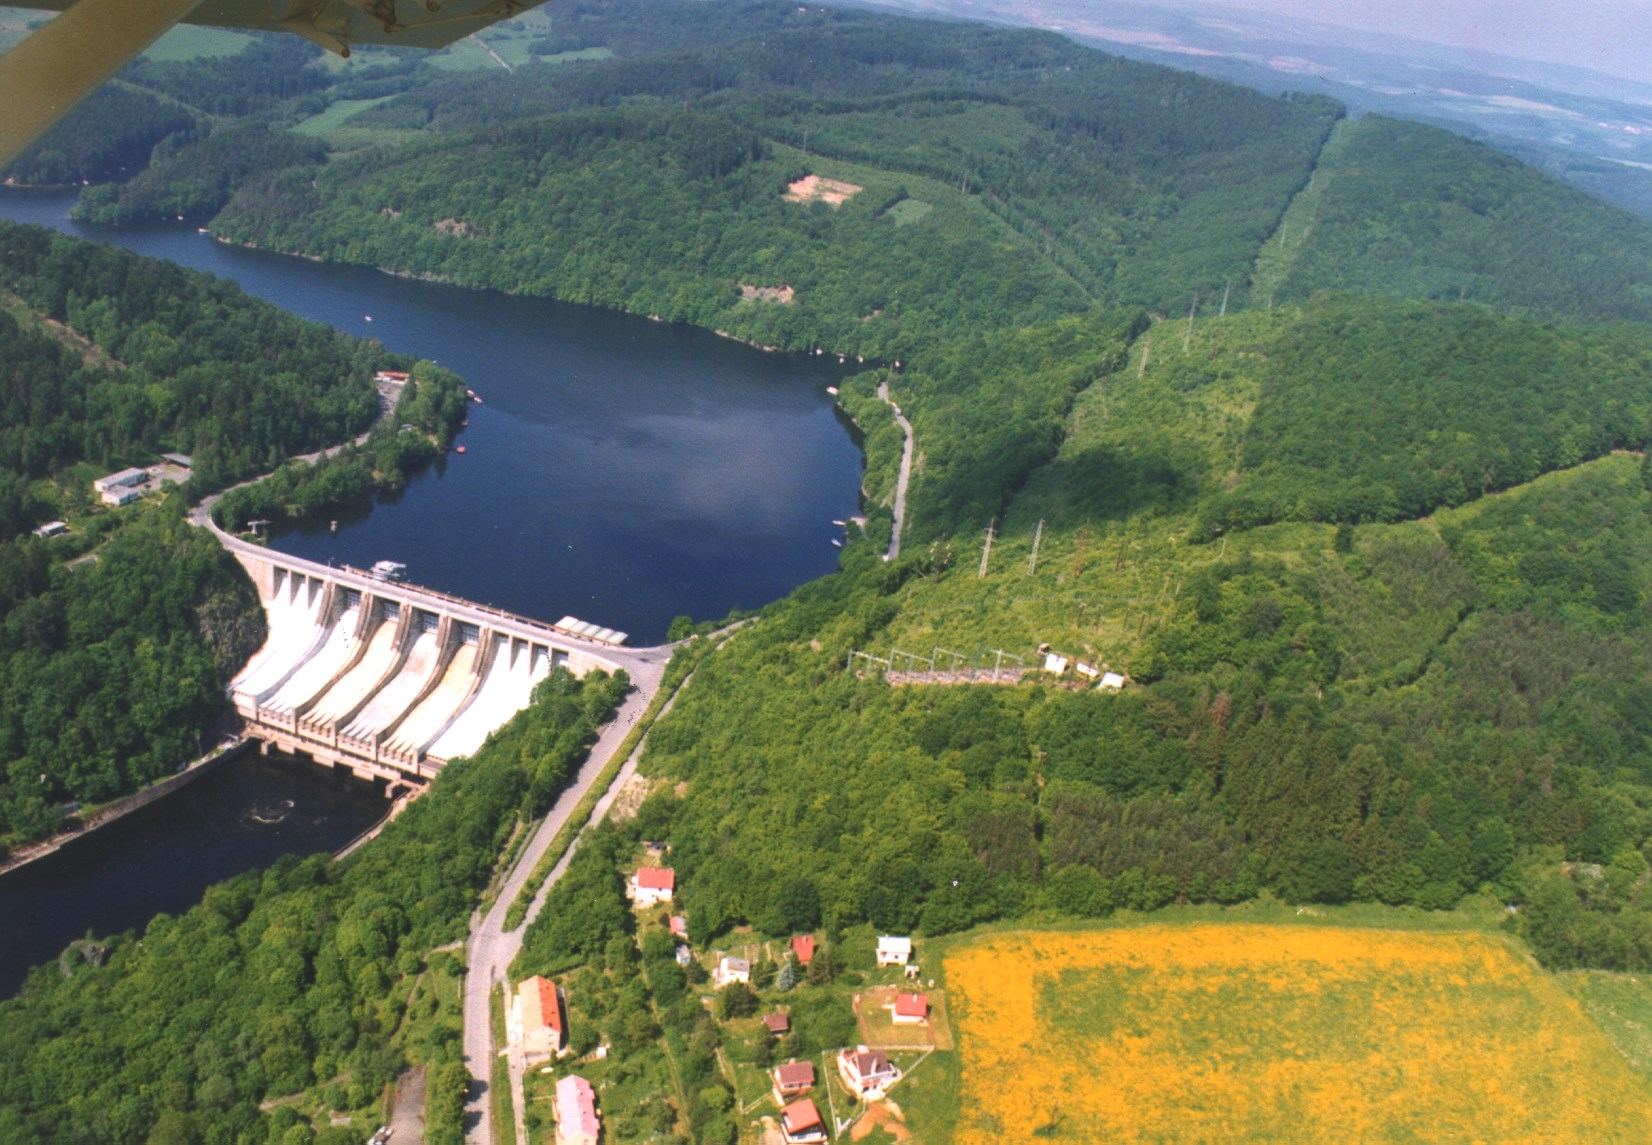 The Slapy Hydroelectric Power Station